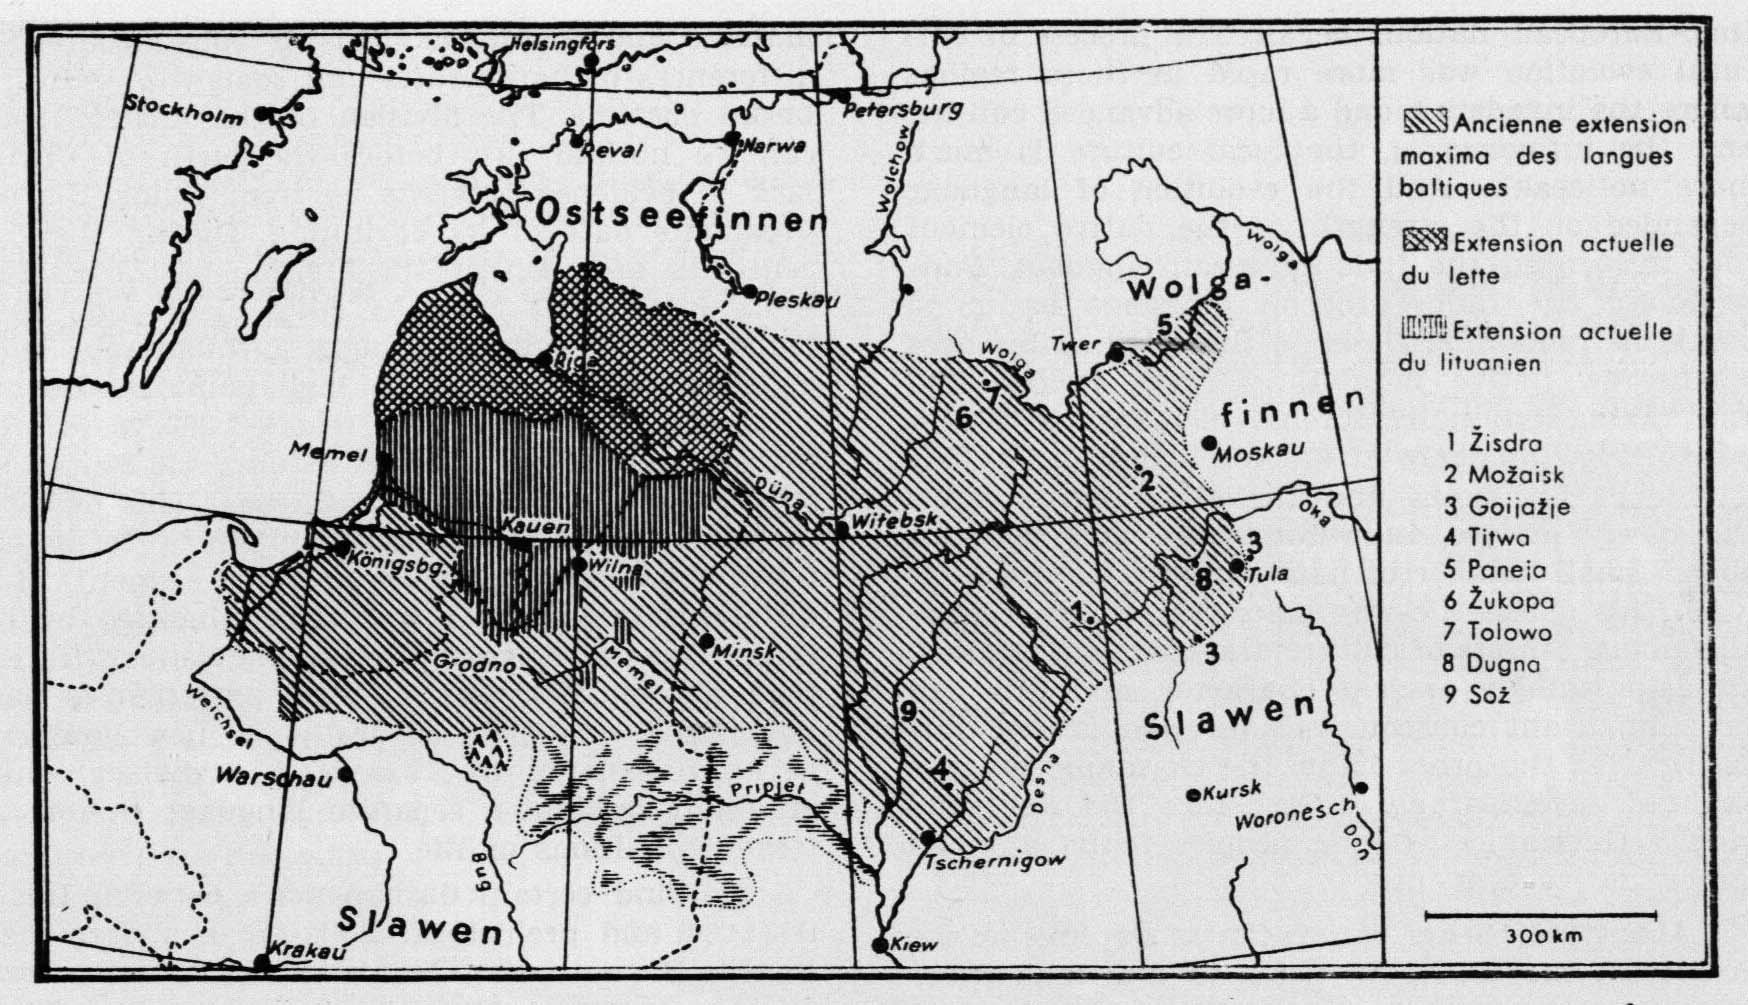 In Search of the Origins of the Lithuanian People - Dr